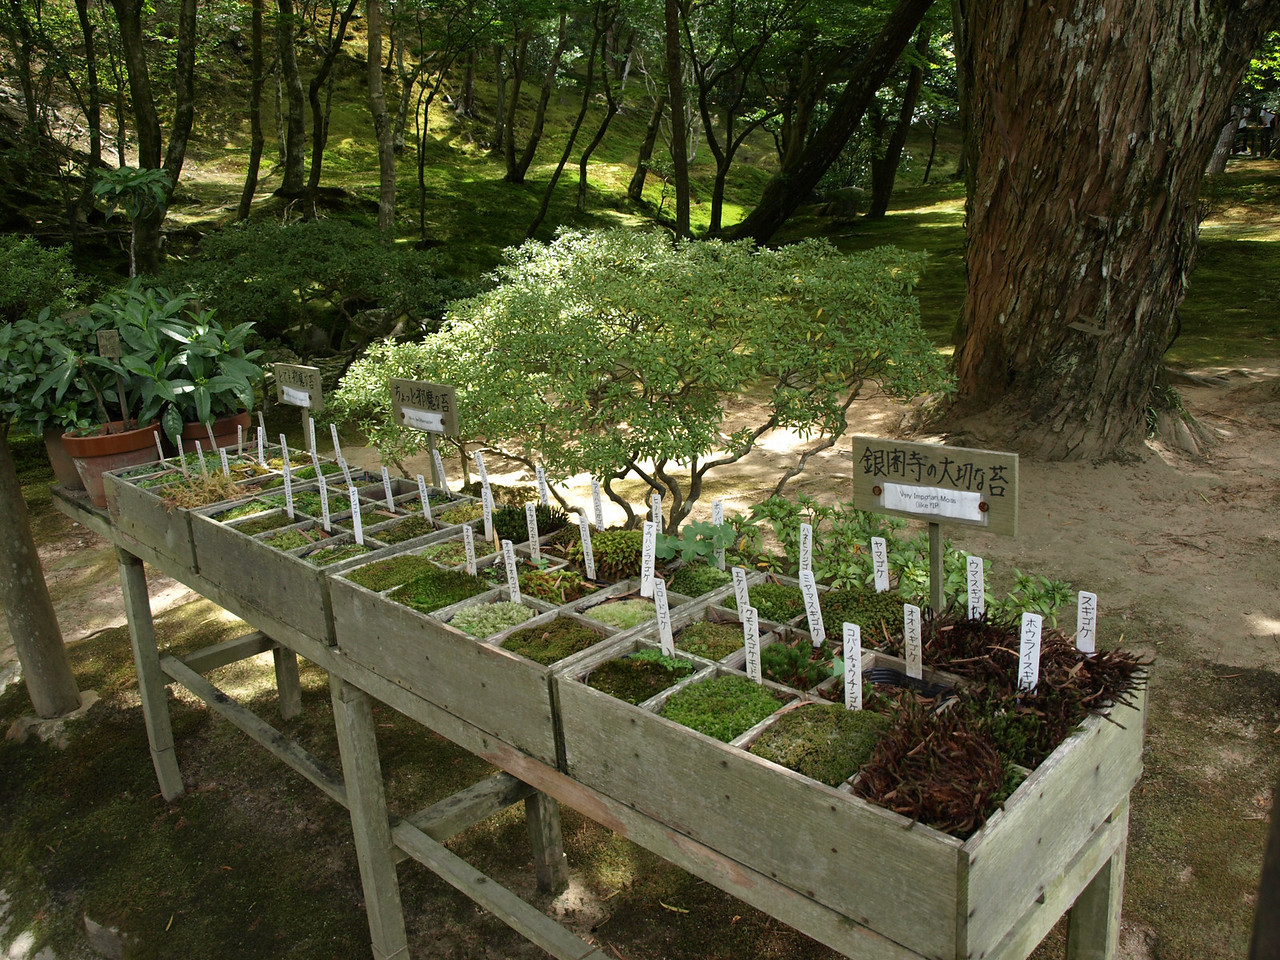 A little herb garden, with plants likely used for landscaping in the rock gardens.